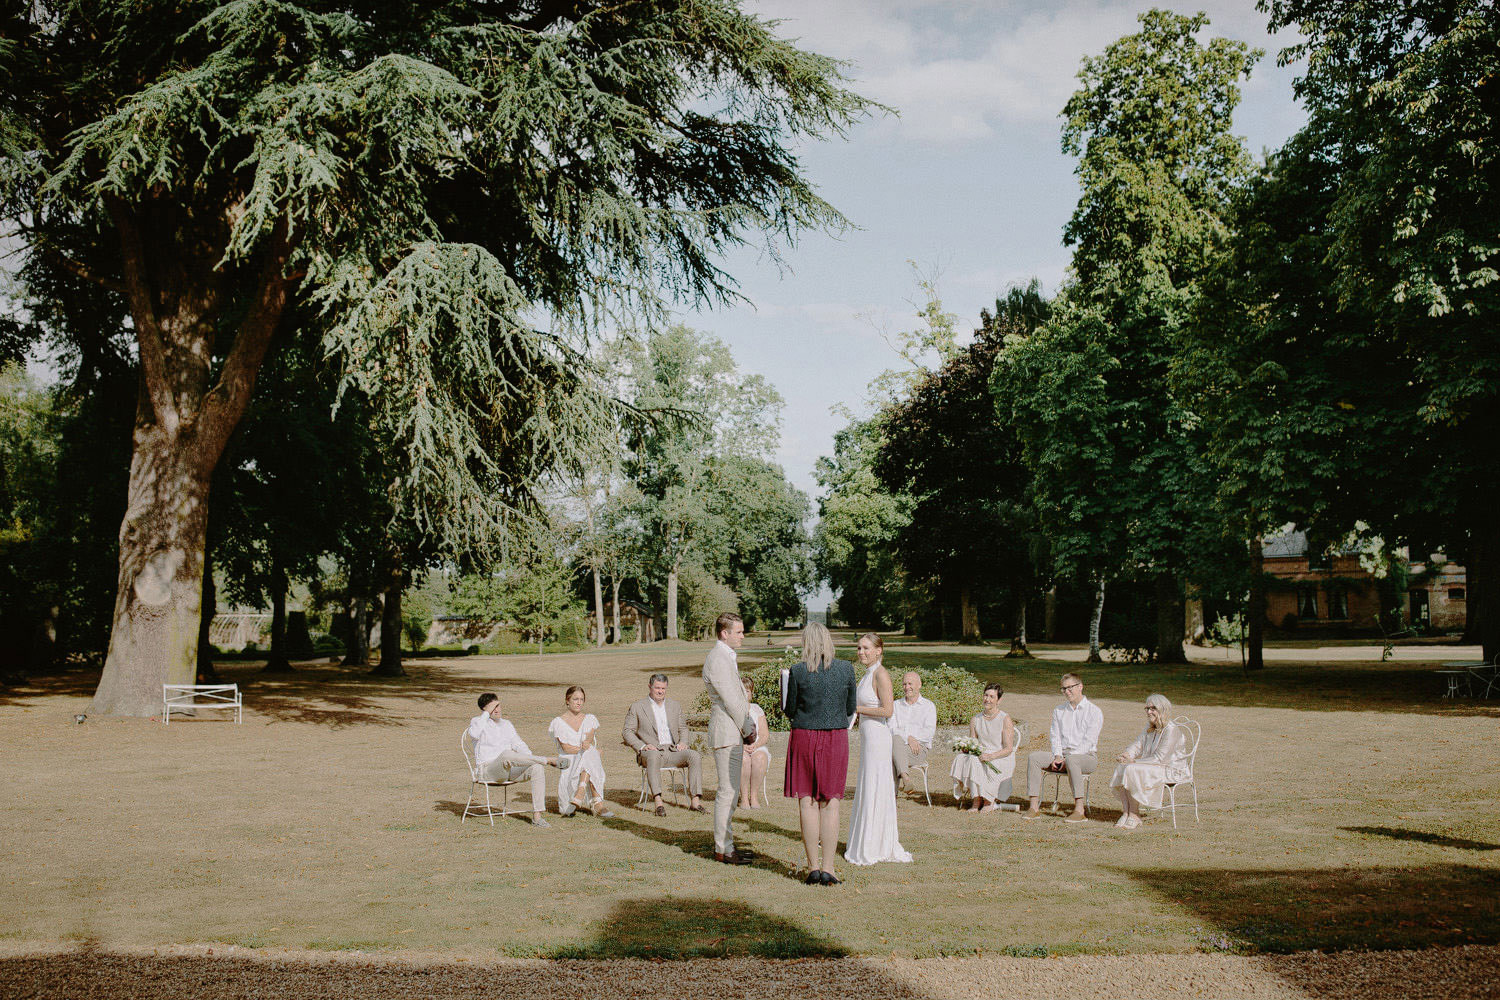 wedding ceremony taking place at Chateau de Bouthonvilliers